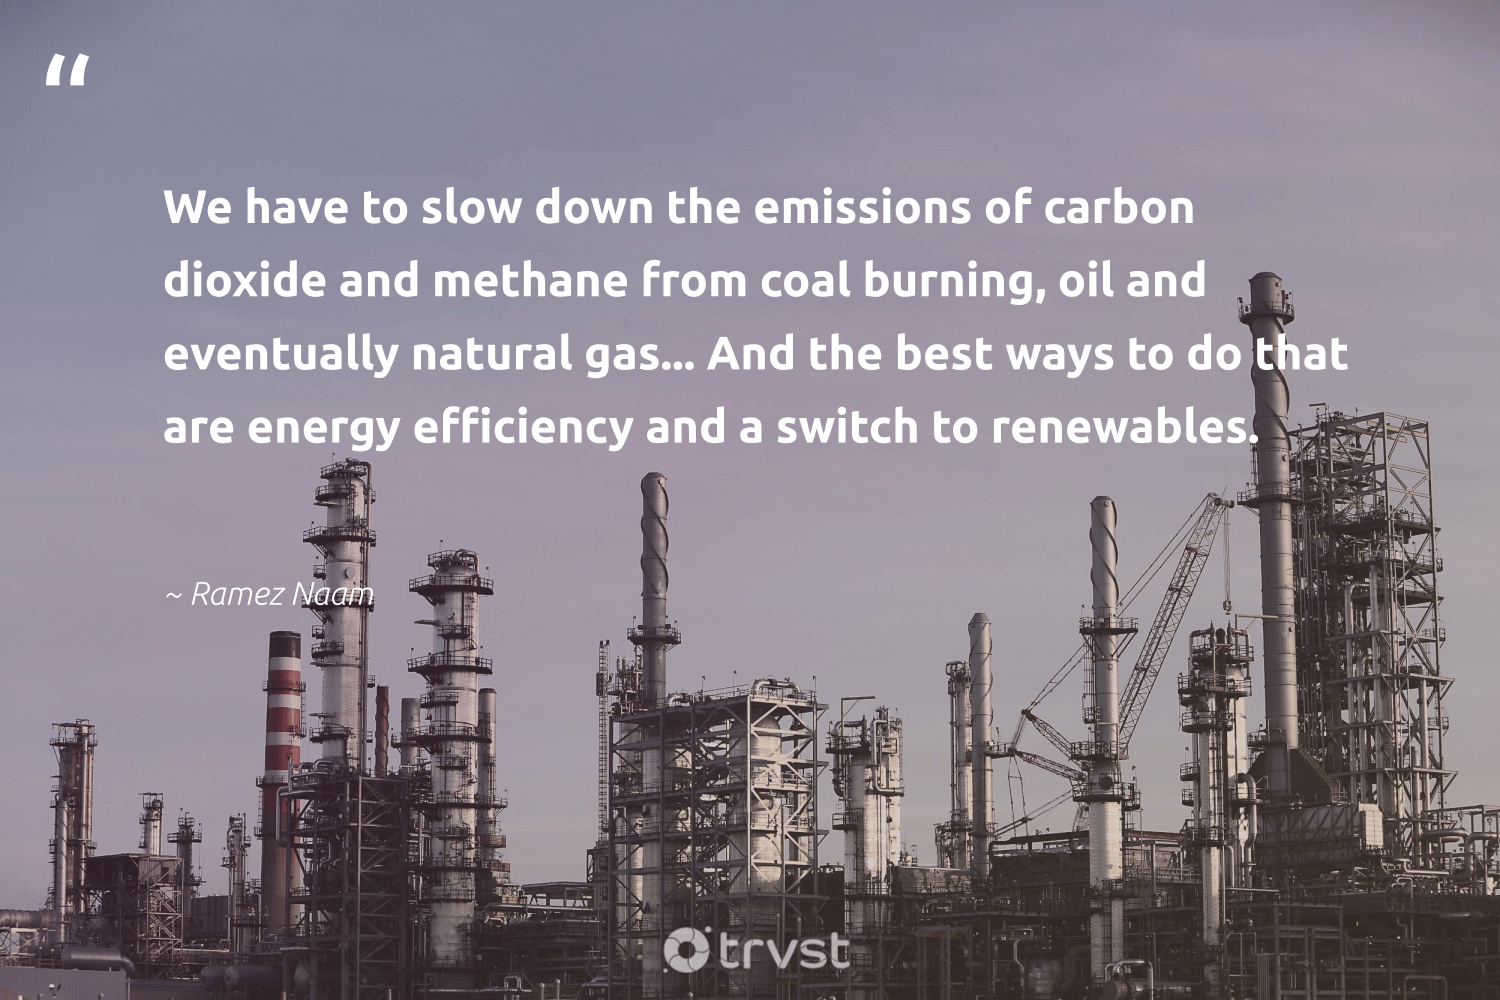 """""""We have to slow down the emissions of carbon dioxide and methane from coal burning, oil and eventually natural gas... And the best ways to do that are energy efficiency and a switch to renewables.""""  - Ramez Naam #trvst #quotes #fossilfuels #carbon #energy #renewables #oil #gas #coal #natural #oilslick #planetearth"""